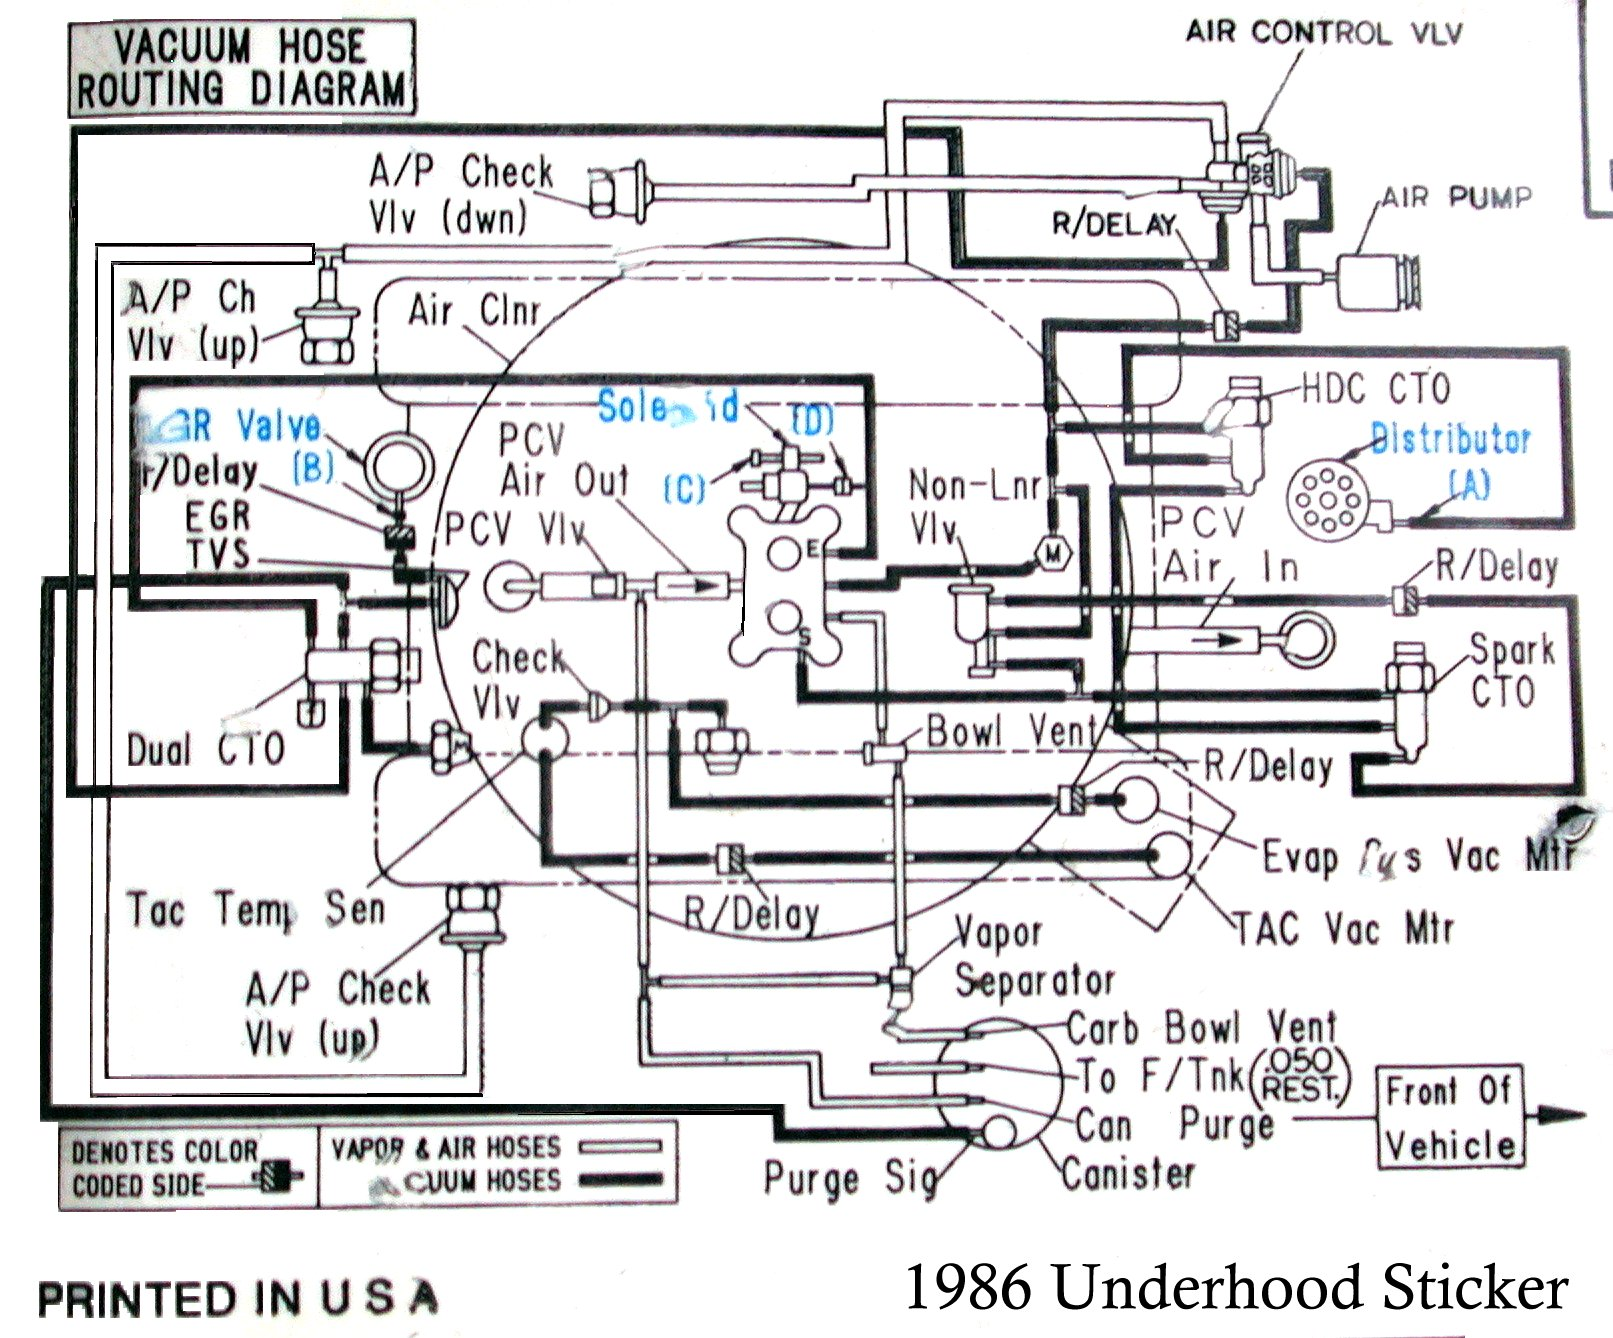 1986 GW Hood Vacuum Layout Sticker